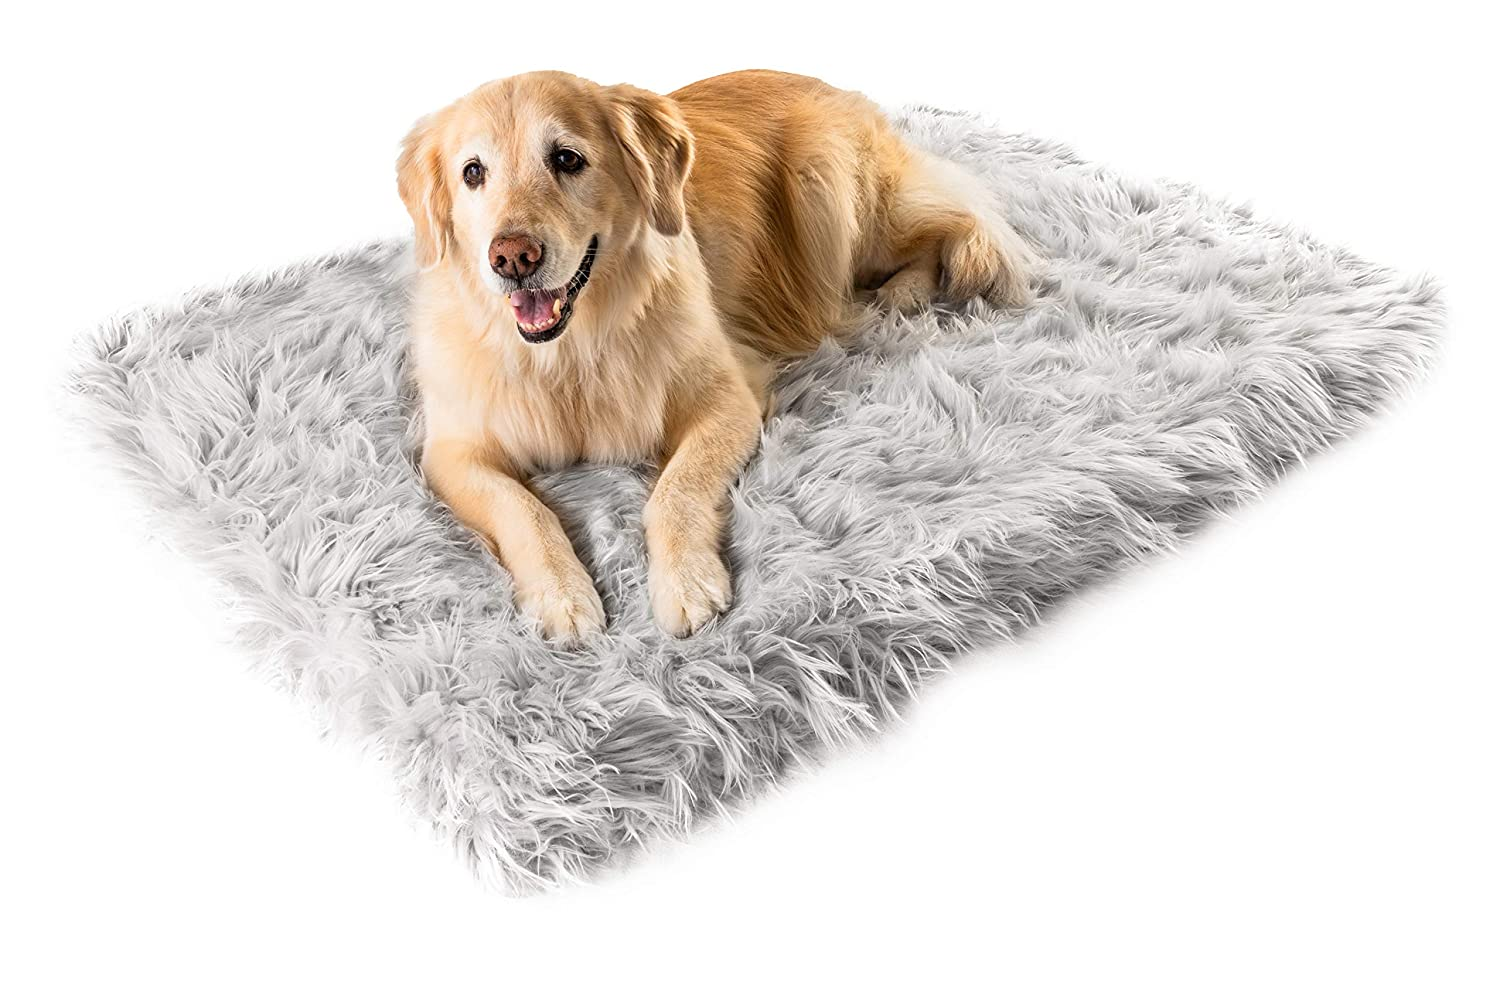 Treat A Dog Puprug Faux Fur Memory Foam Orthopedic Dog Bed, Premium Memory Foam Base, Ultra-Soft Faux Fur Cover, Modern and Attractive Design Multiple Sizes Styles